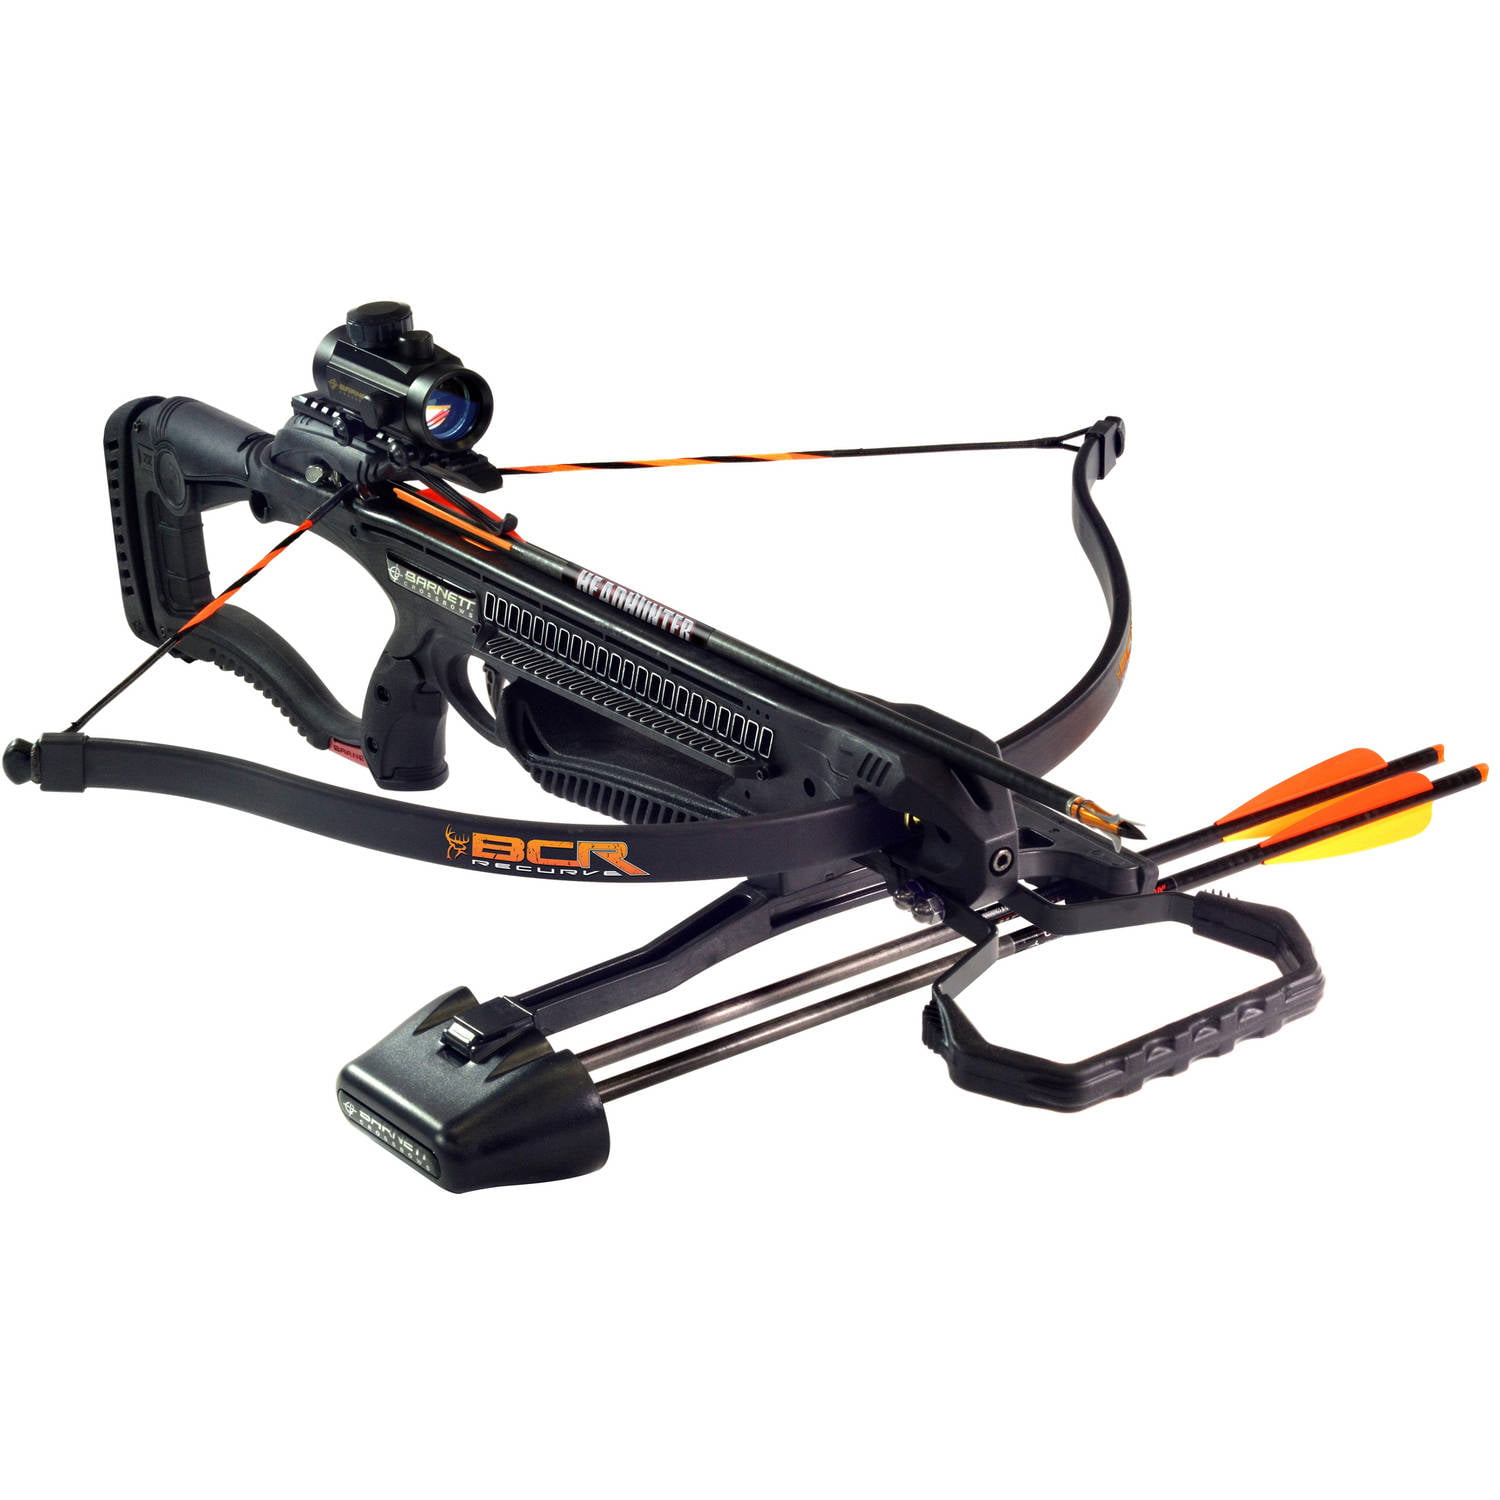 Barnett BCR Recurve Crossbow w 3 Headhunter Arrows & Quiver by Barnett Crossbows